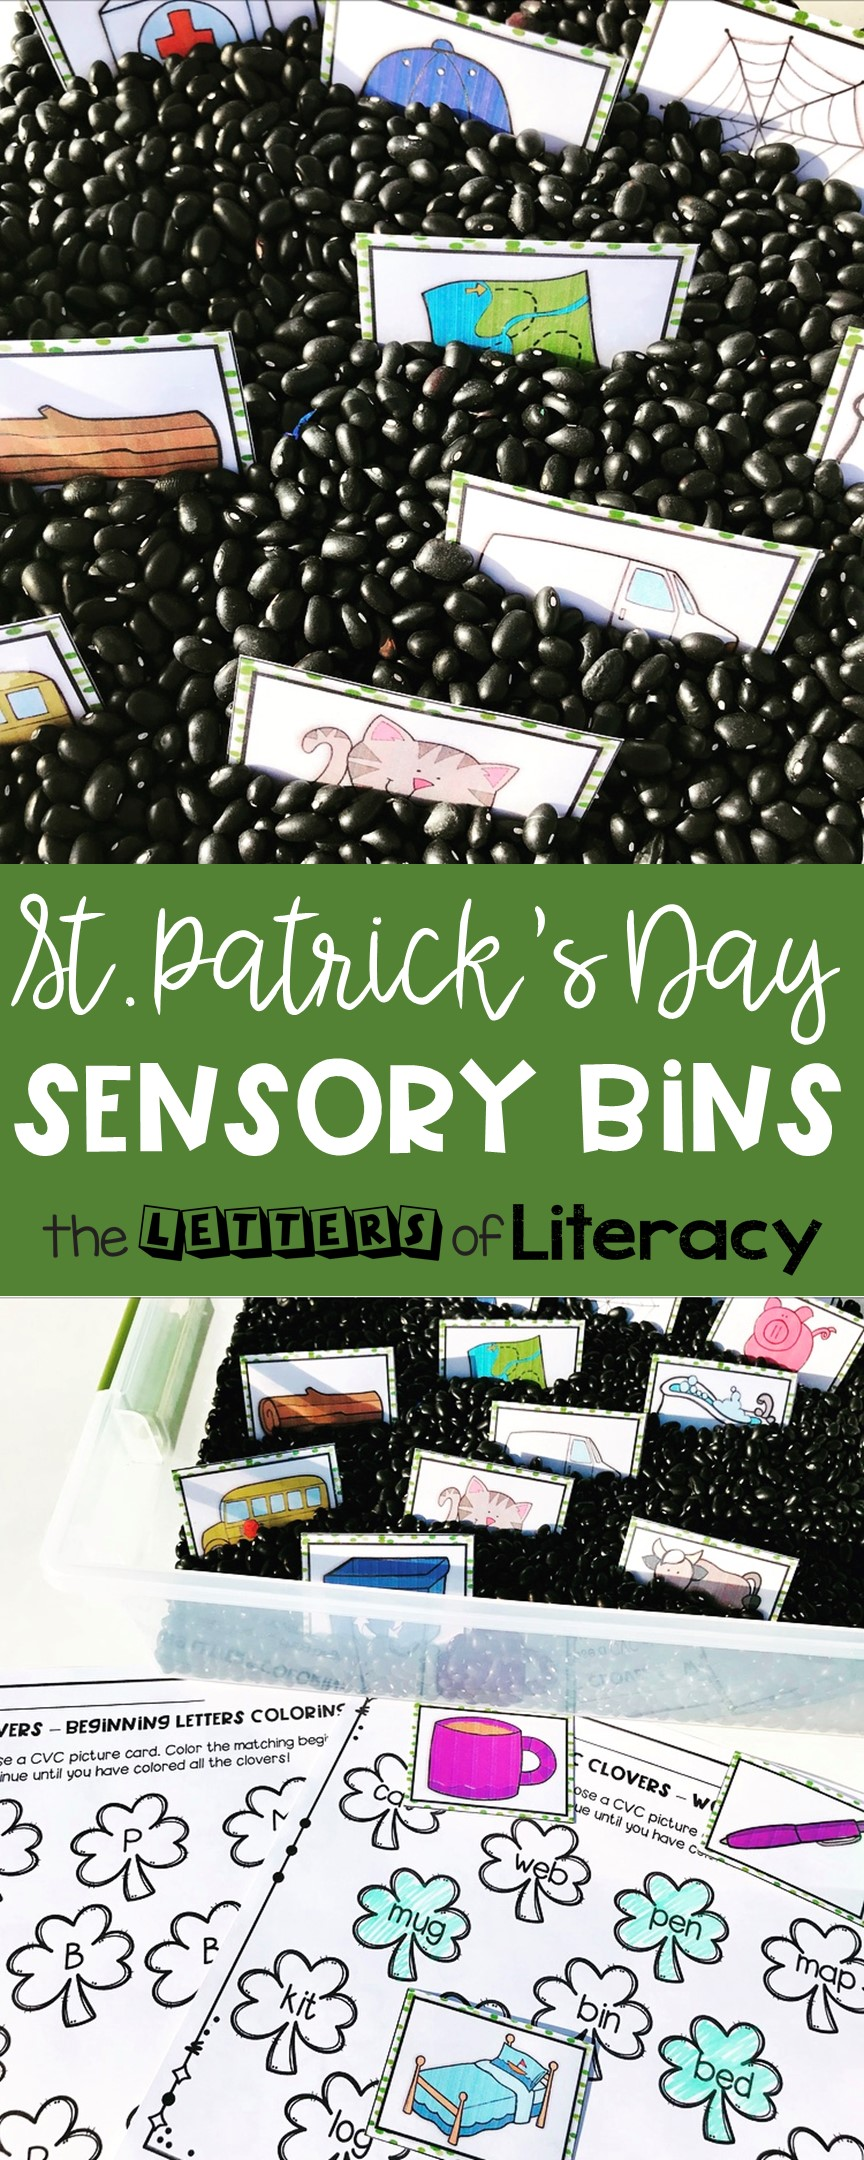 This St. Patrick's Day Sensory Bin is so much fun for March! Grab the FREE CVC printables to make it a perfect hands-on literacy center for Kindergarten or 1st grade!